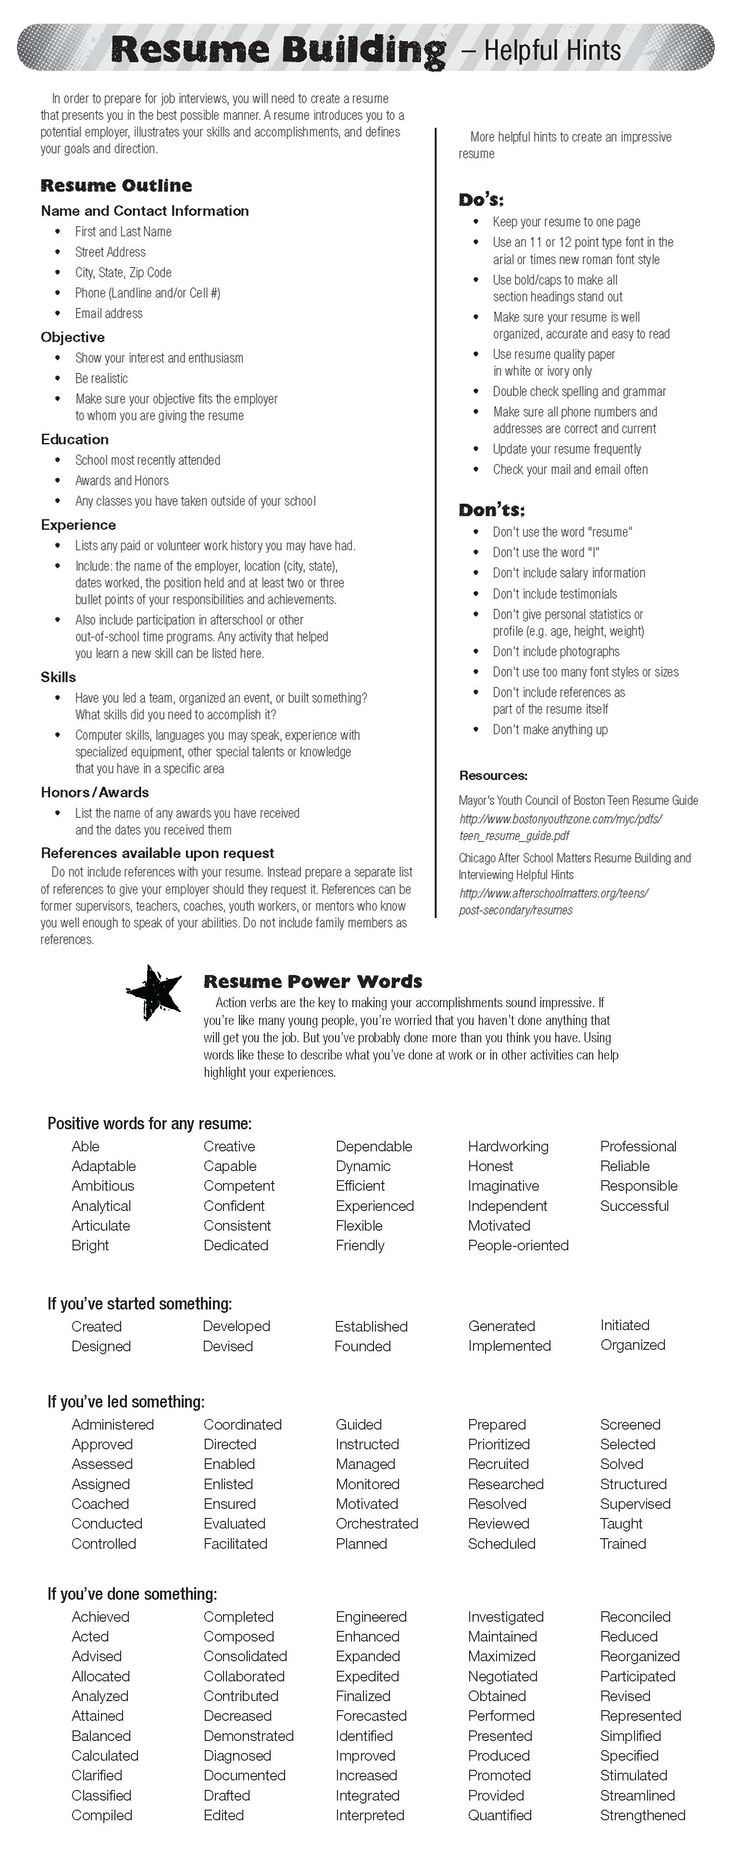 Opposenewapstandardsus  Pleasant  Ideas About Resume On Pinterest  Cv Format Resume  With Heavenly Check Out Todays Resume Building Tips Resume Resumepowerwords With Enchanting Resume Services Nyc Also Modern Resume Template Free In Addition Theater Resume Template And Google Docs Resume Builder As Well As Student Resume Builder Additionally Er Nurse Resume From Pinterestcom With Opposenewapstandardsus  Heavenly  Ideas About Resume On Pinterest  Cv Format Resume  With Enchanting Check Out Todays Resume Building Tips Resume Resumepowerwords And Pleasant Resume Services Nyc Also Modern Resume Template Free In Addition Theater Resume Template From Pinterestcom